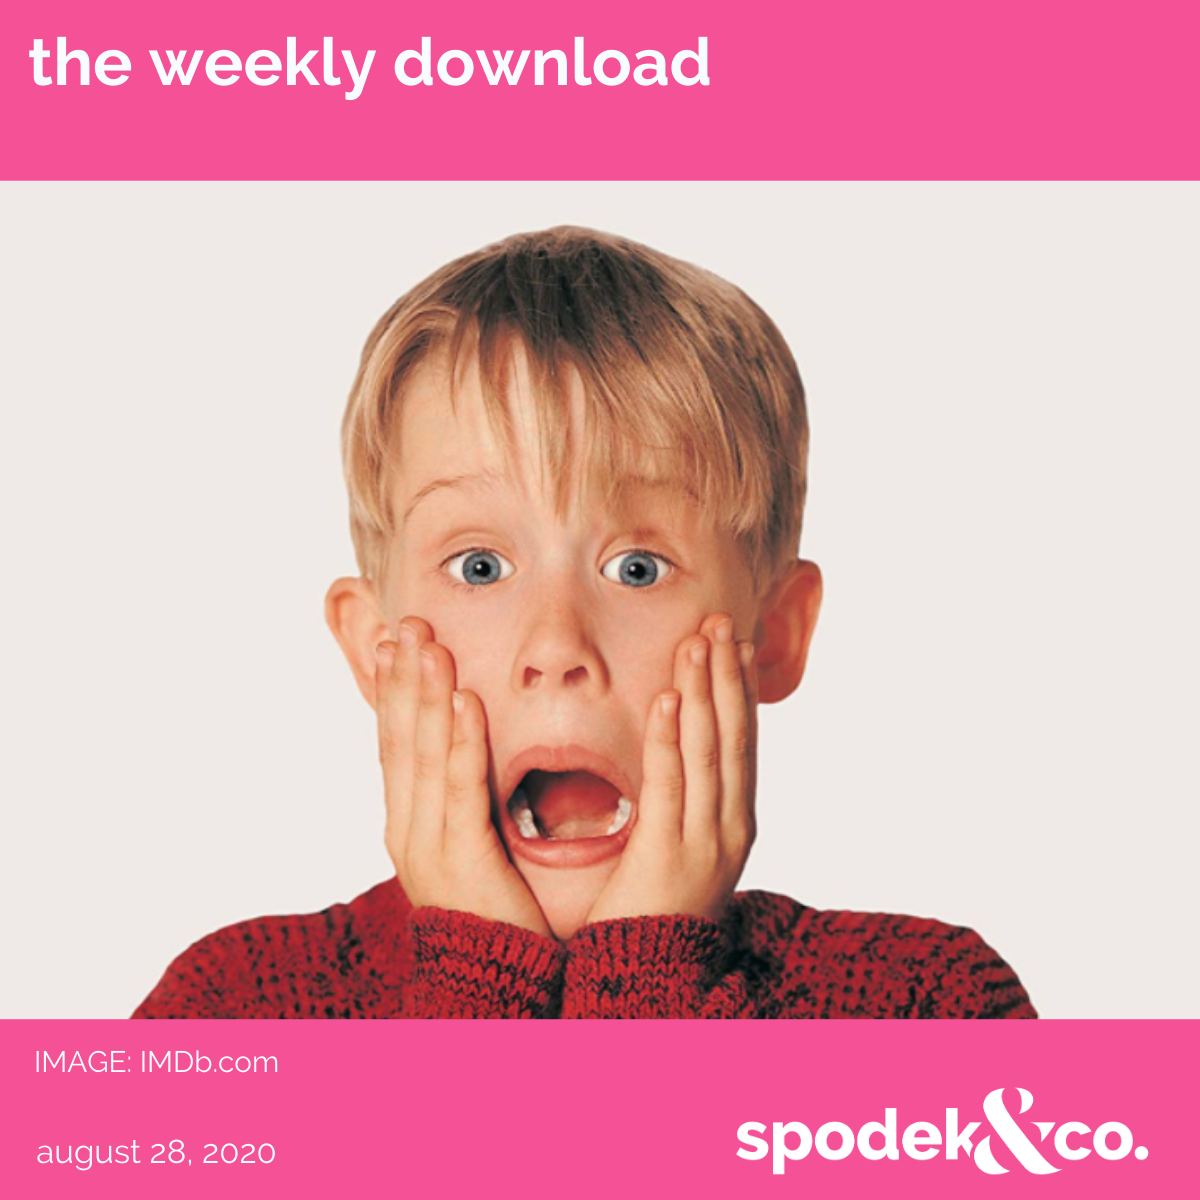 The Weekly Download – August 28, 2020